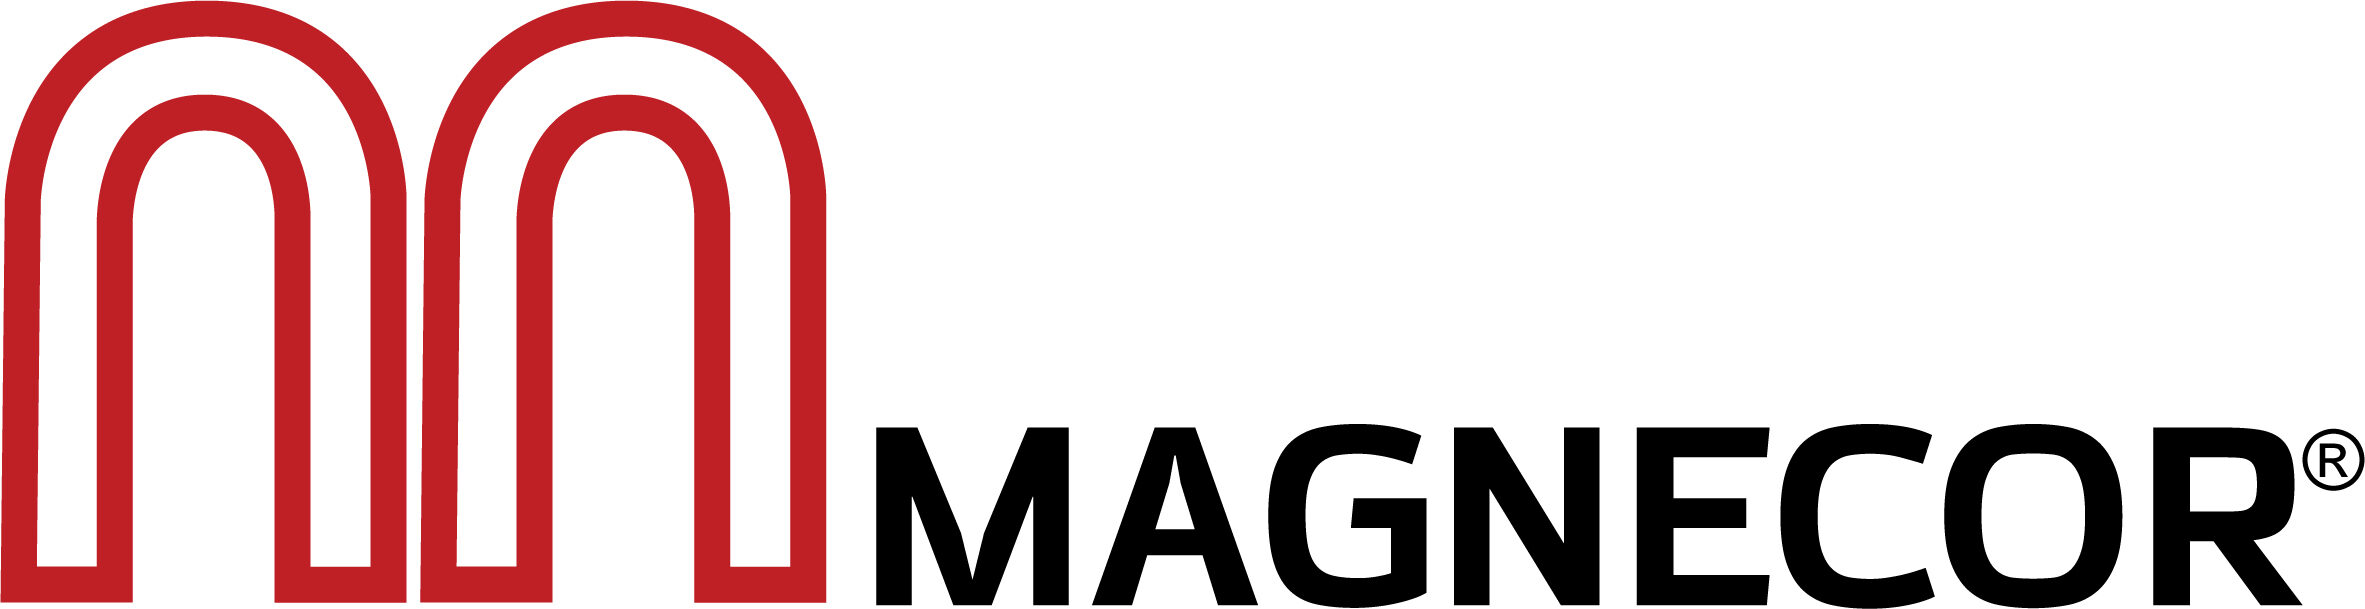 Magnecor USA